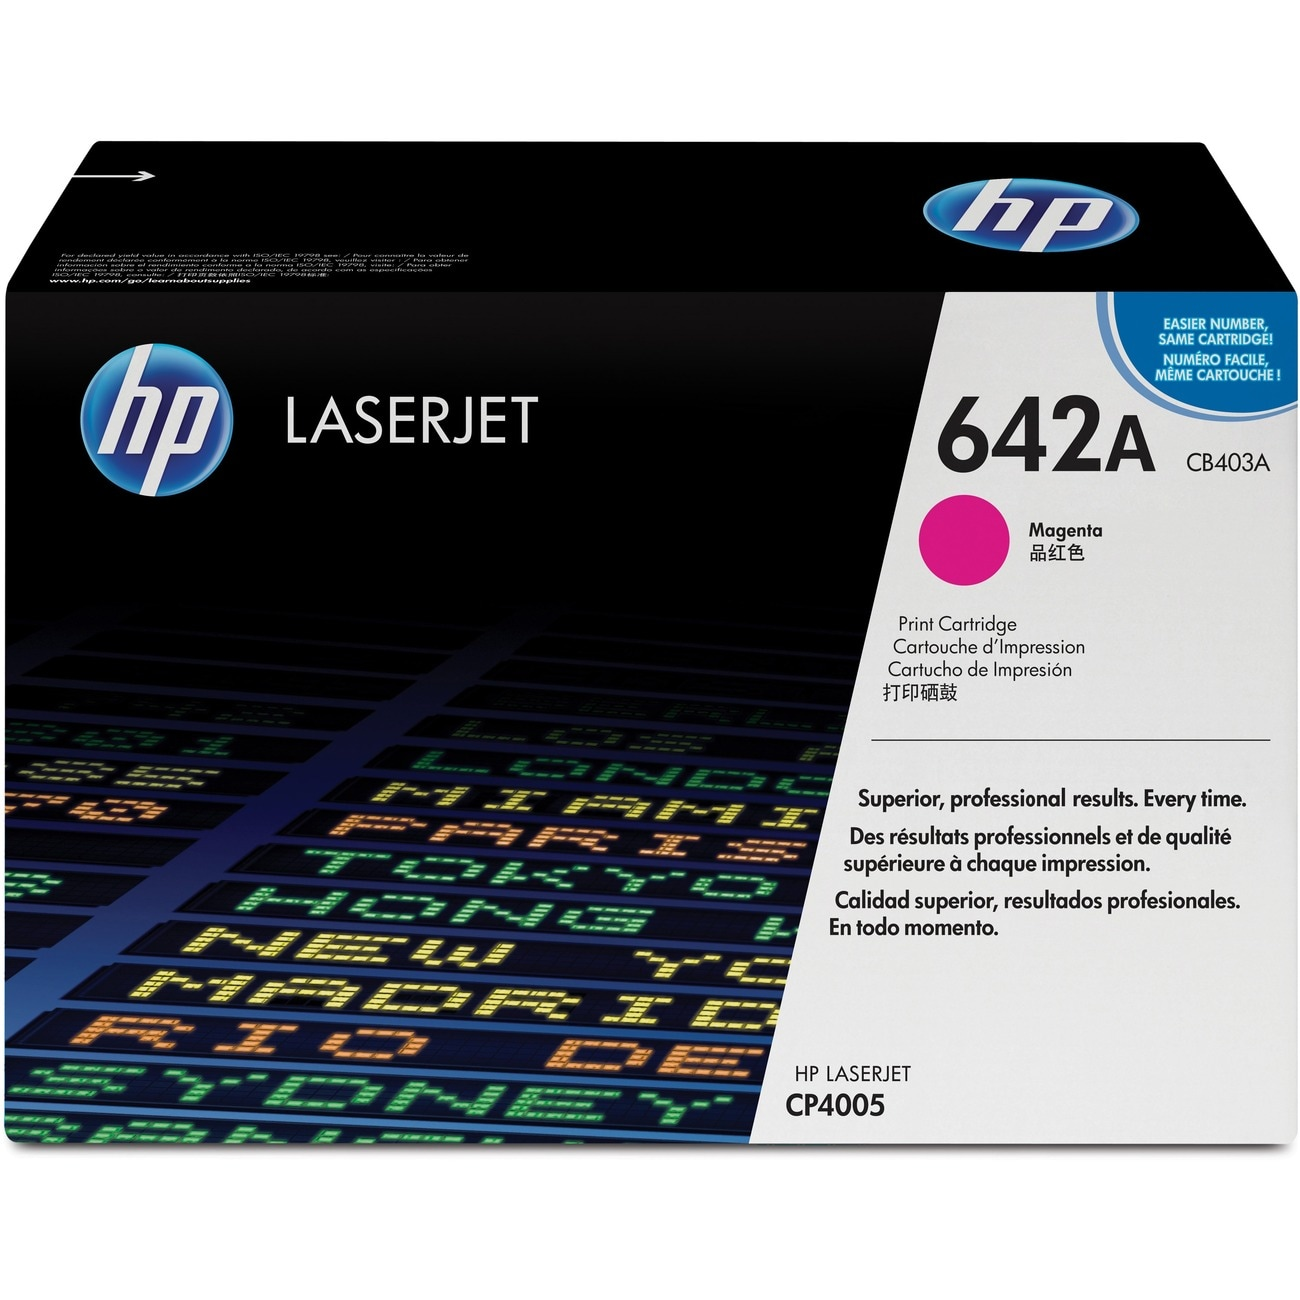 HP Toner Cartridge - Magenta